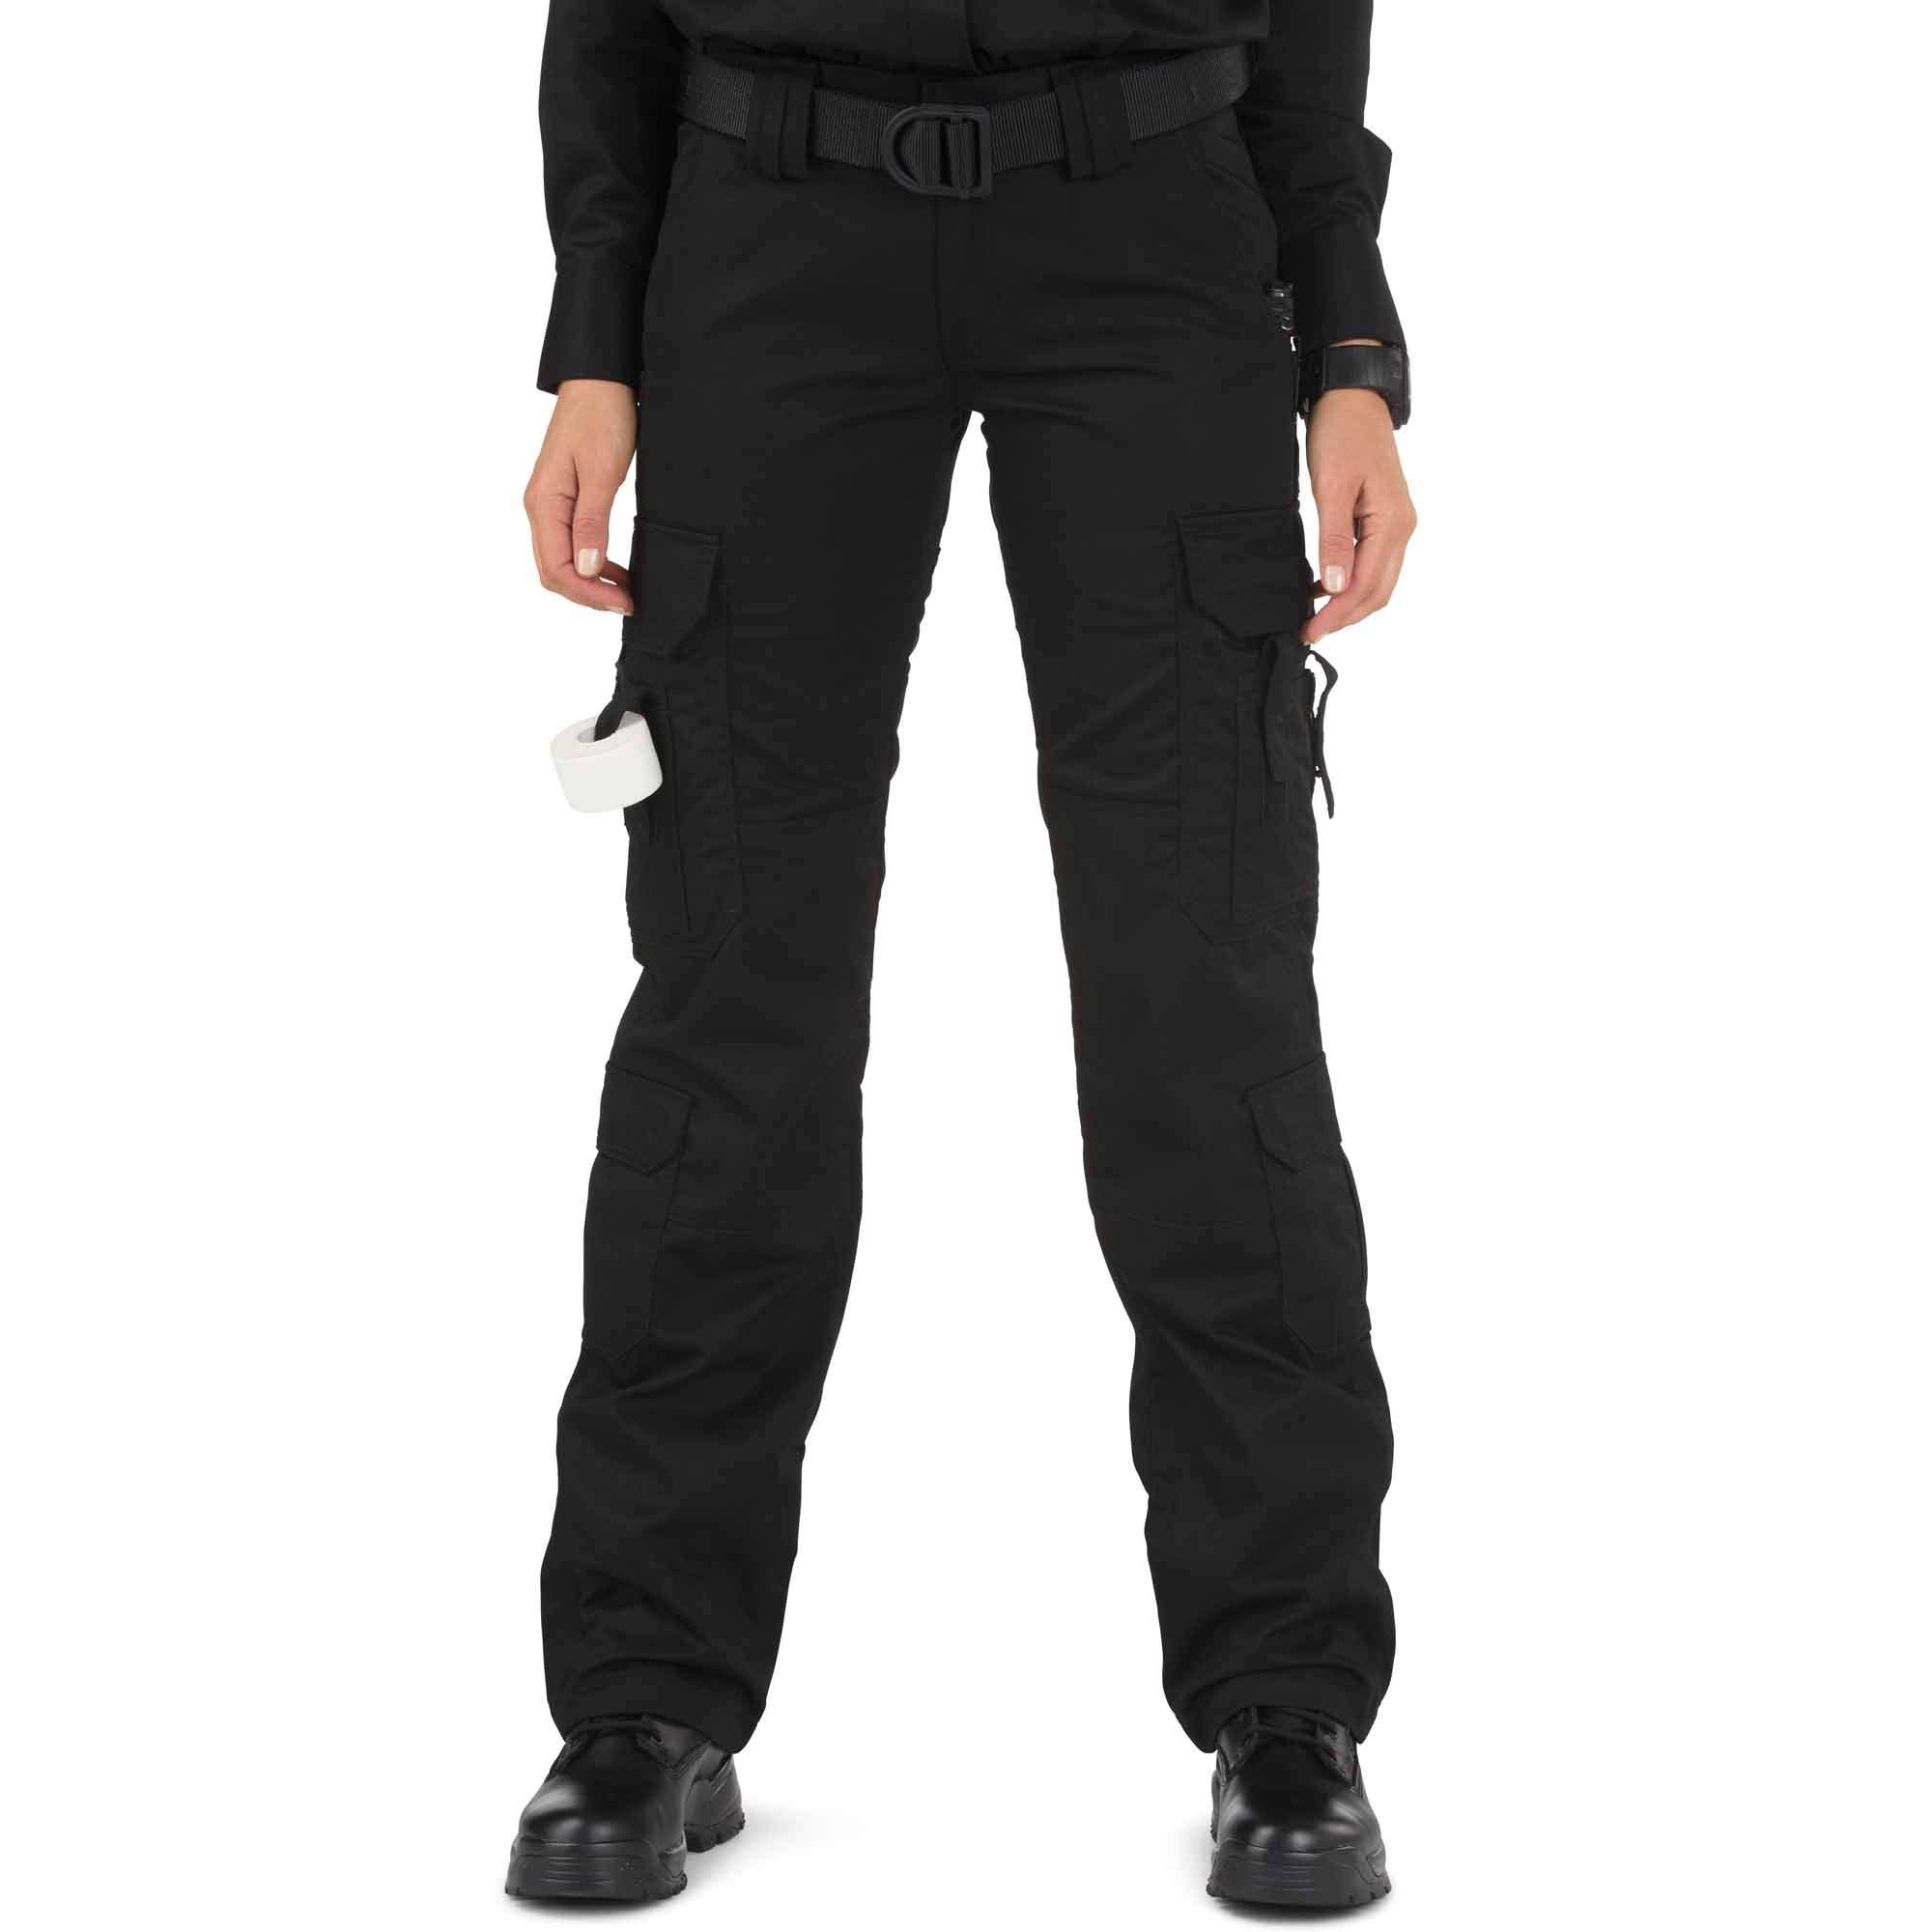 5.11 Tactical Women's Taclite Lightweight EMS Pants Adjustable Waistband Teflon Finish Style 64369